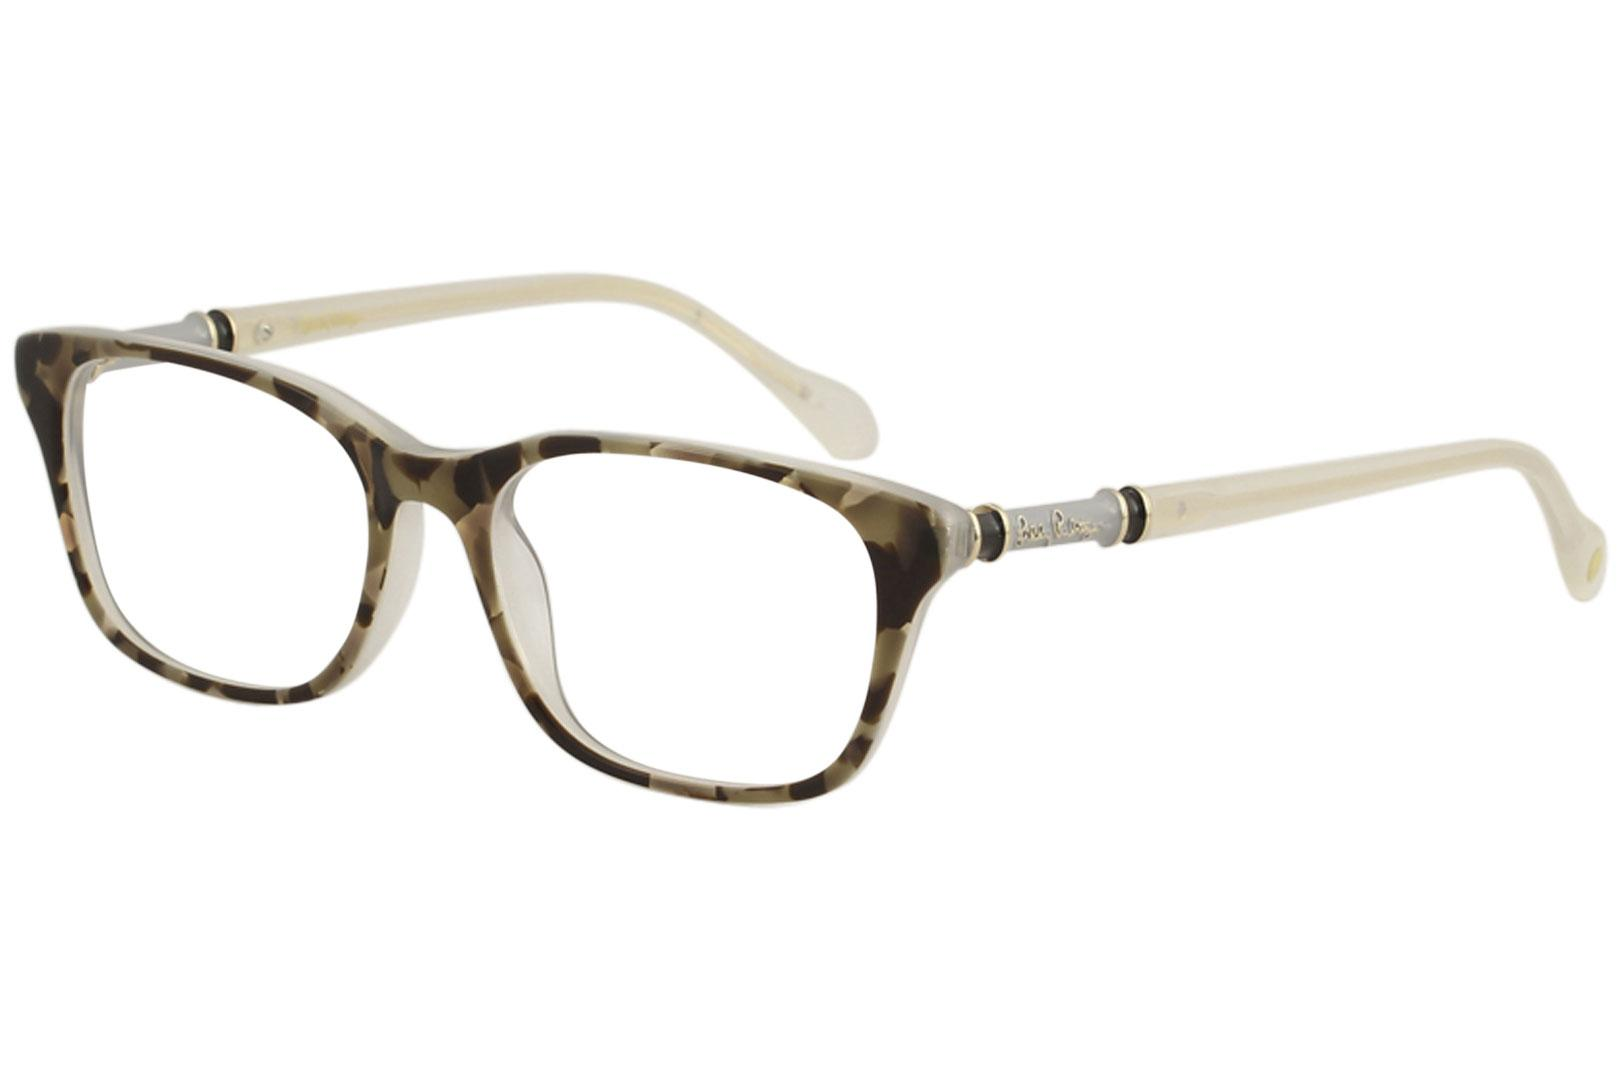 91e76c1833 Lilly Pulitzer Women s Eyeglasses Bailey Full Rim Optical Frame by Lilly  Pulitzer. Touch to zoom